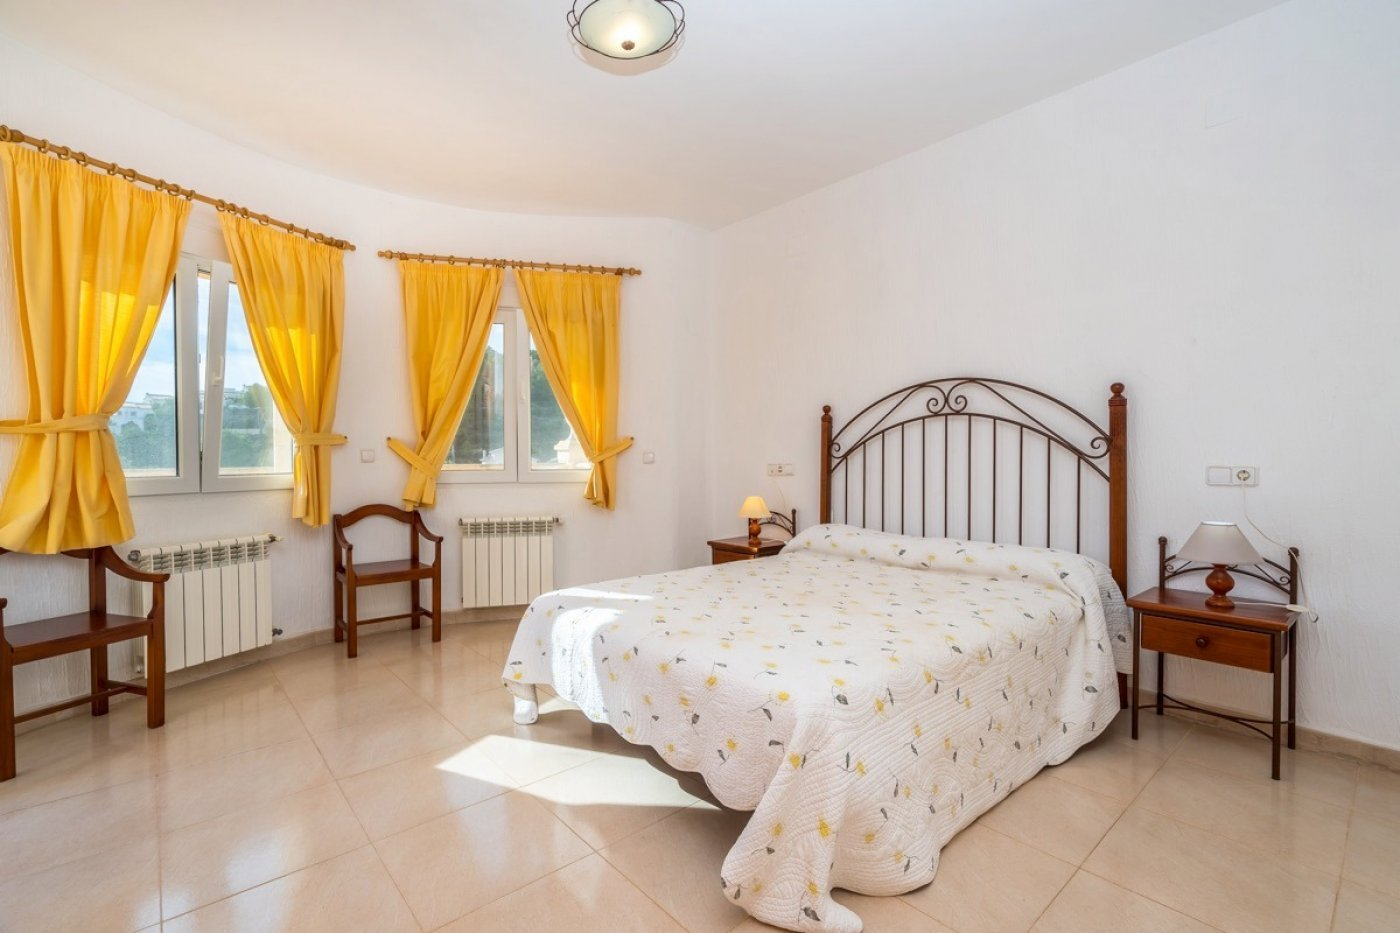 Fotogallerij - 15 - Exceptional homes in the Costa Blanca. Unparalleled Service. Exceptional properties in the Costa Blanca